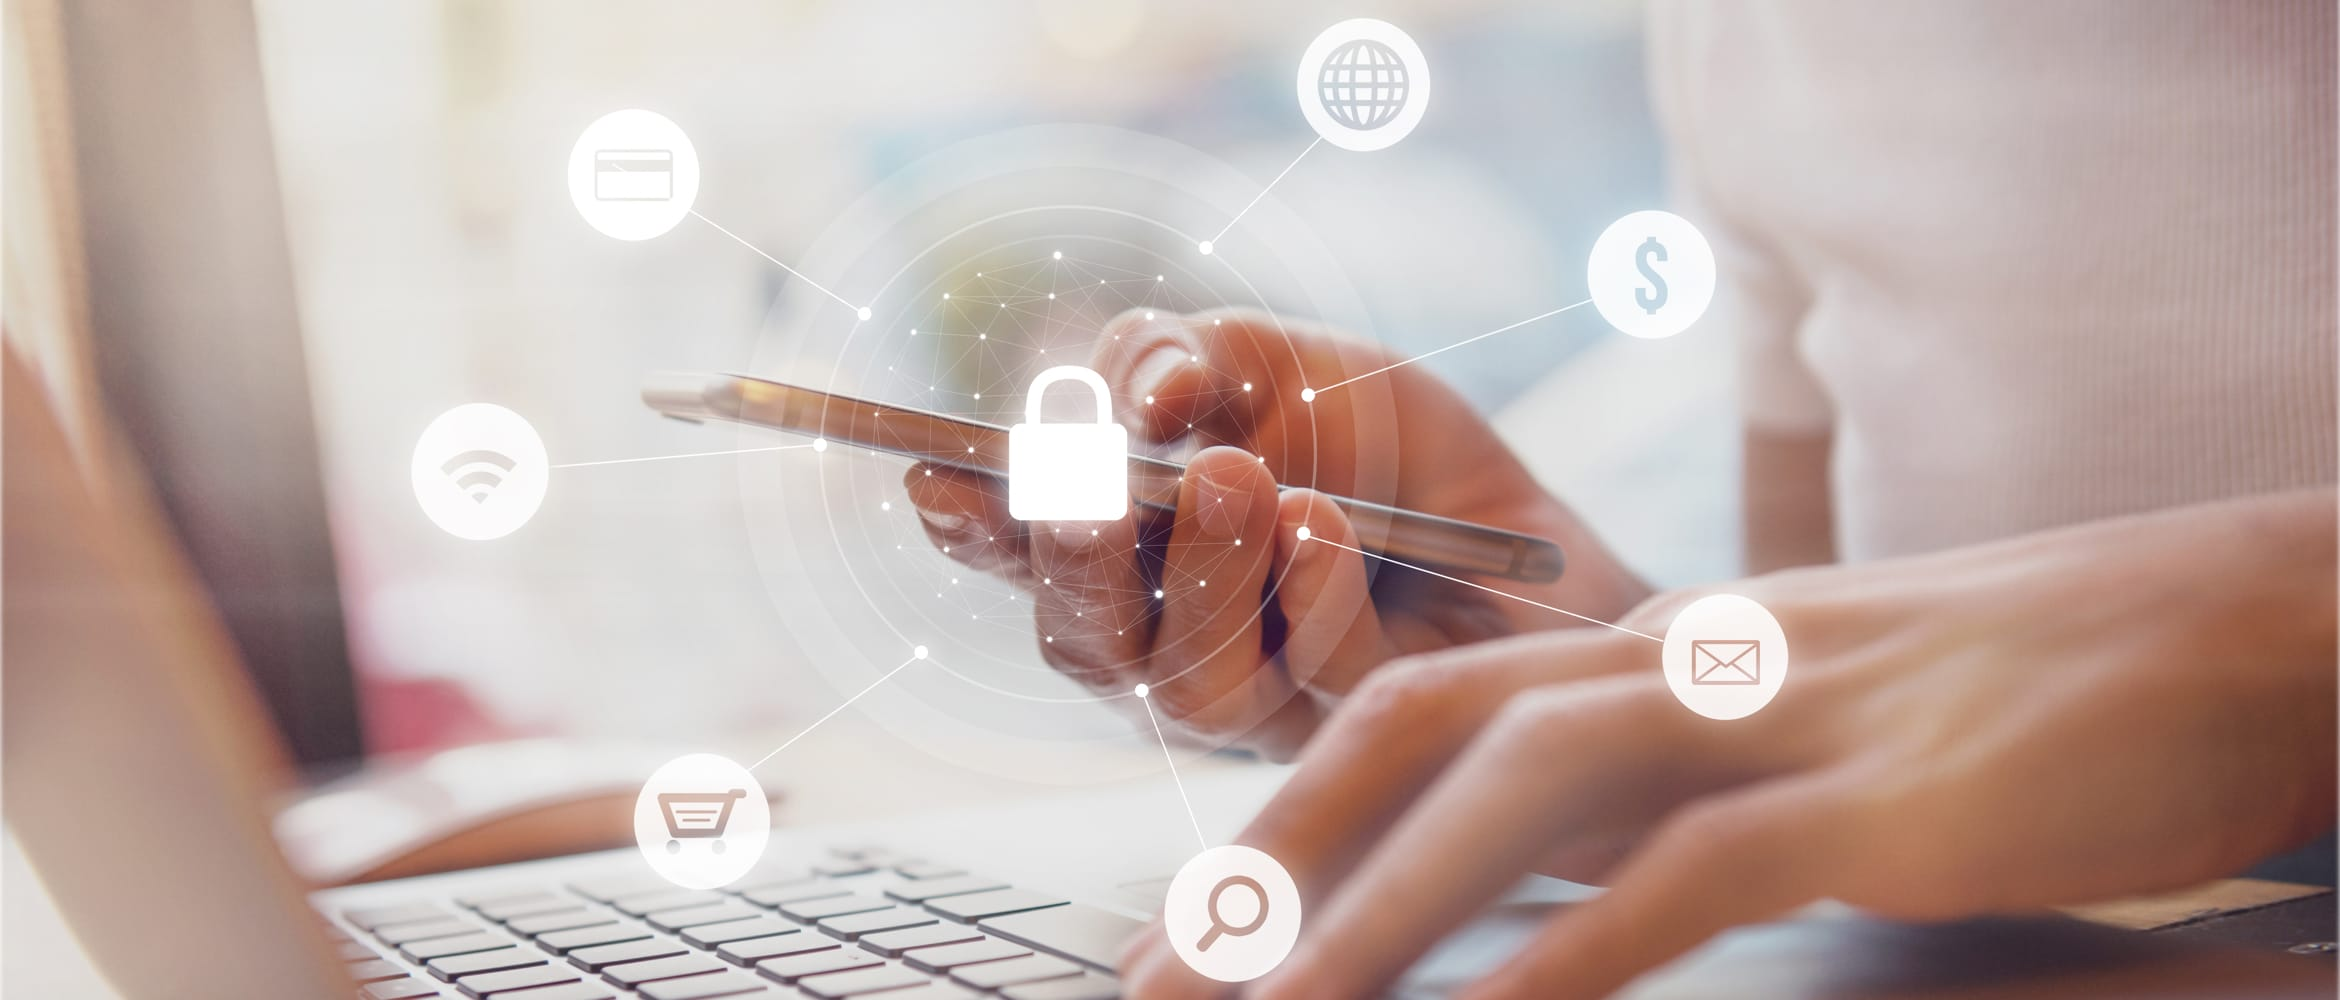 image of woman using a laptop and smartphone with security icons overlaid